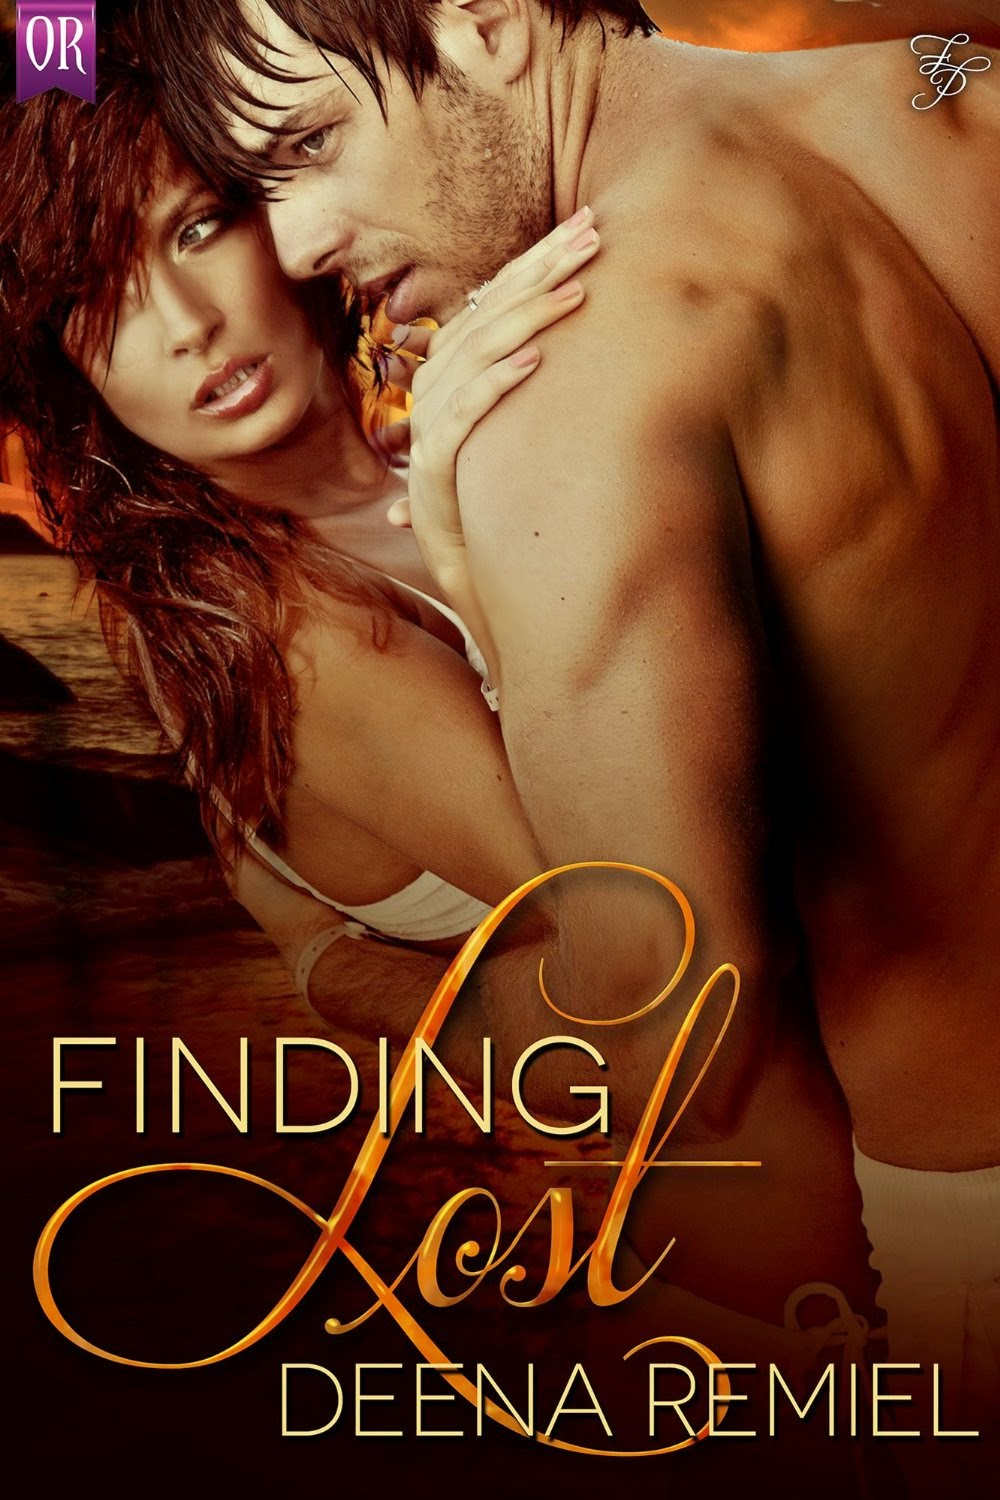 Finding Lost by Deena Remiel (CR)